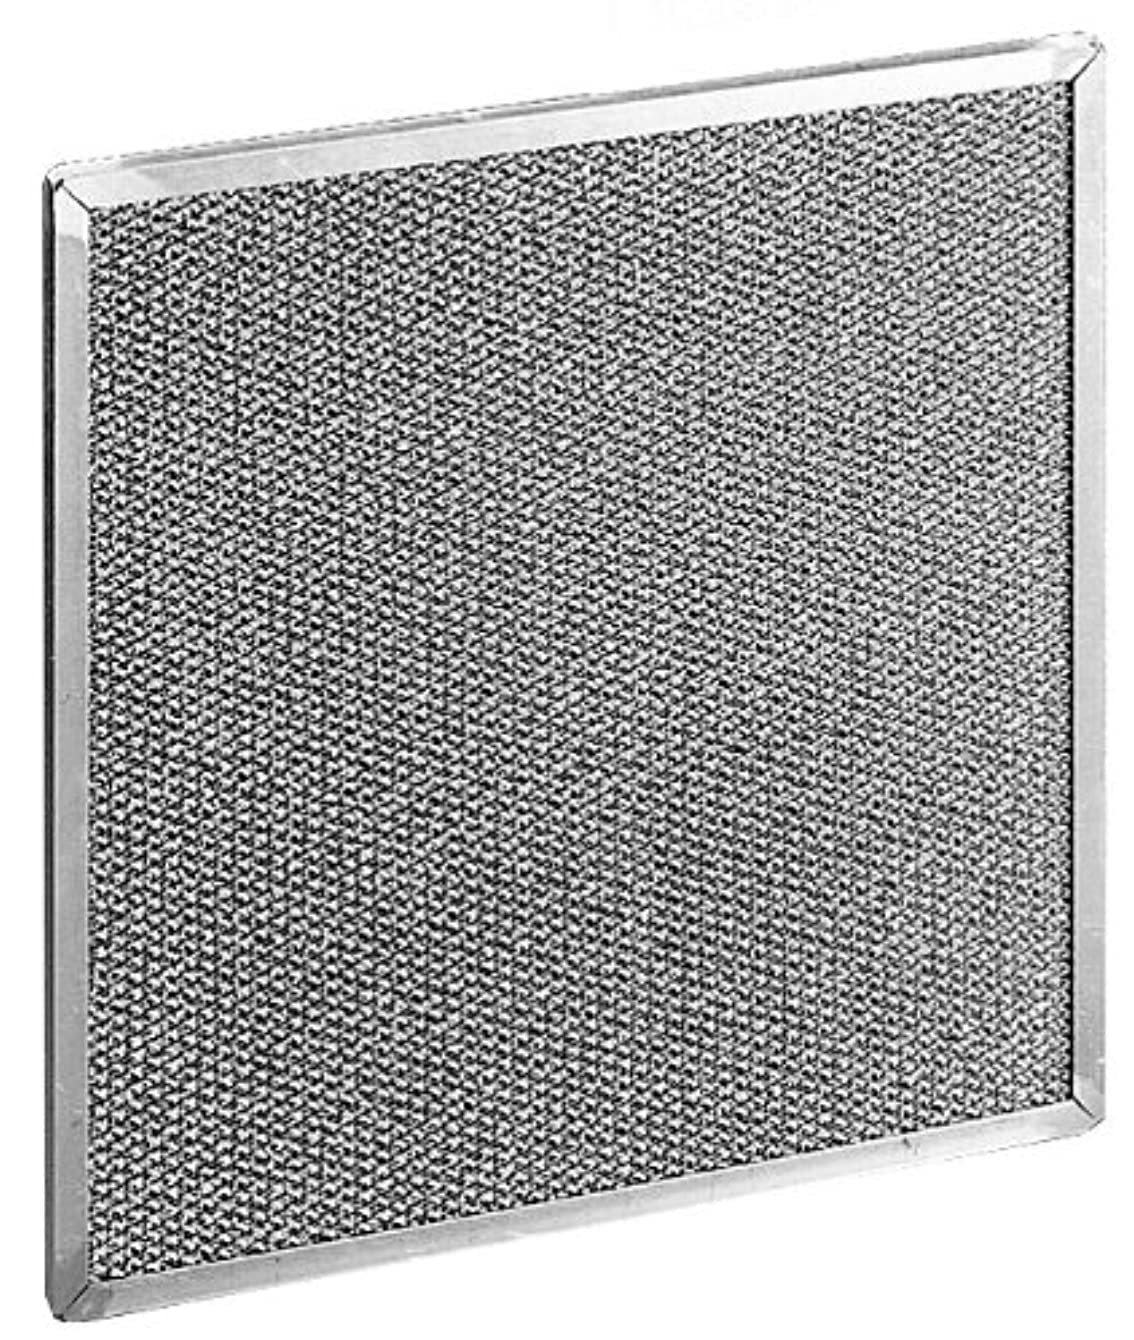 Rittal 3286410 Aluminum Metal Filter for Air Conditioners, 10-19/32